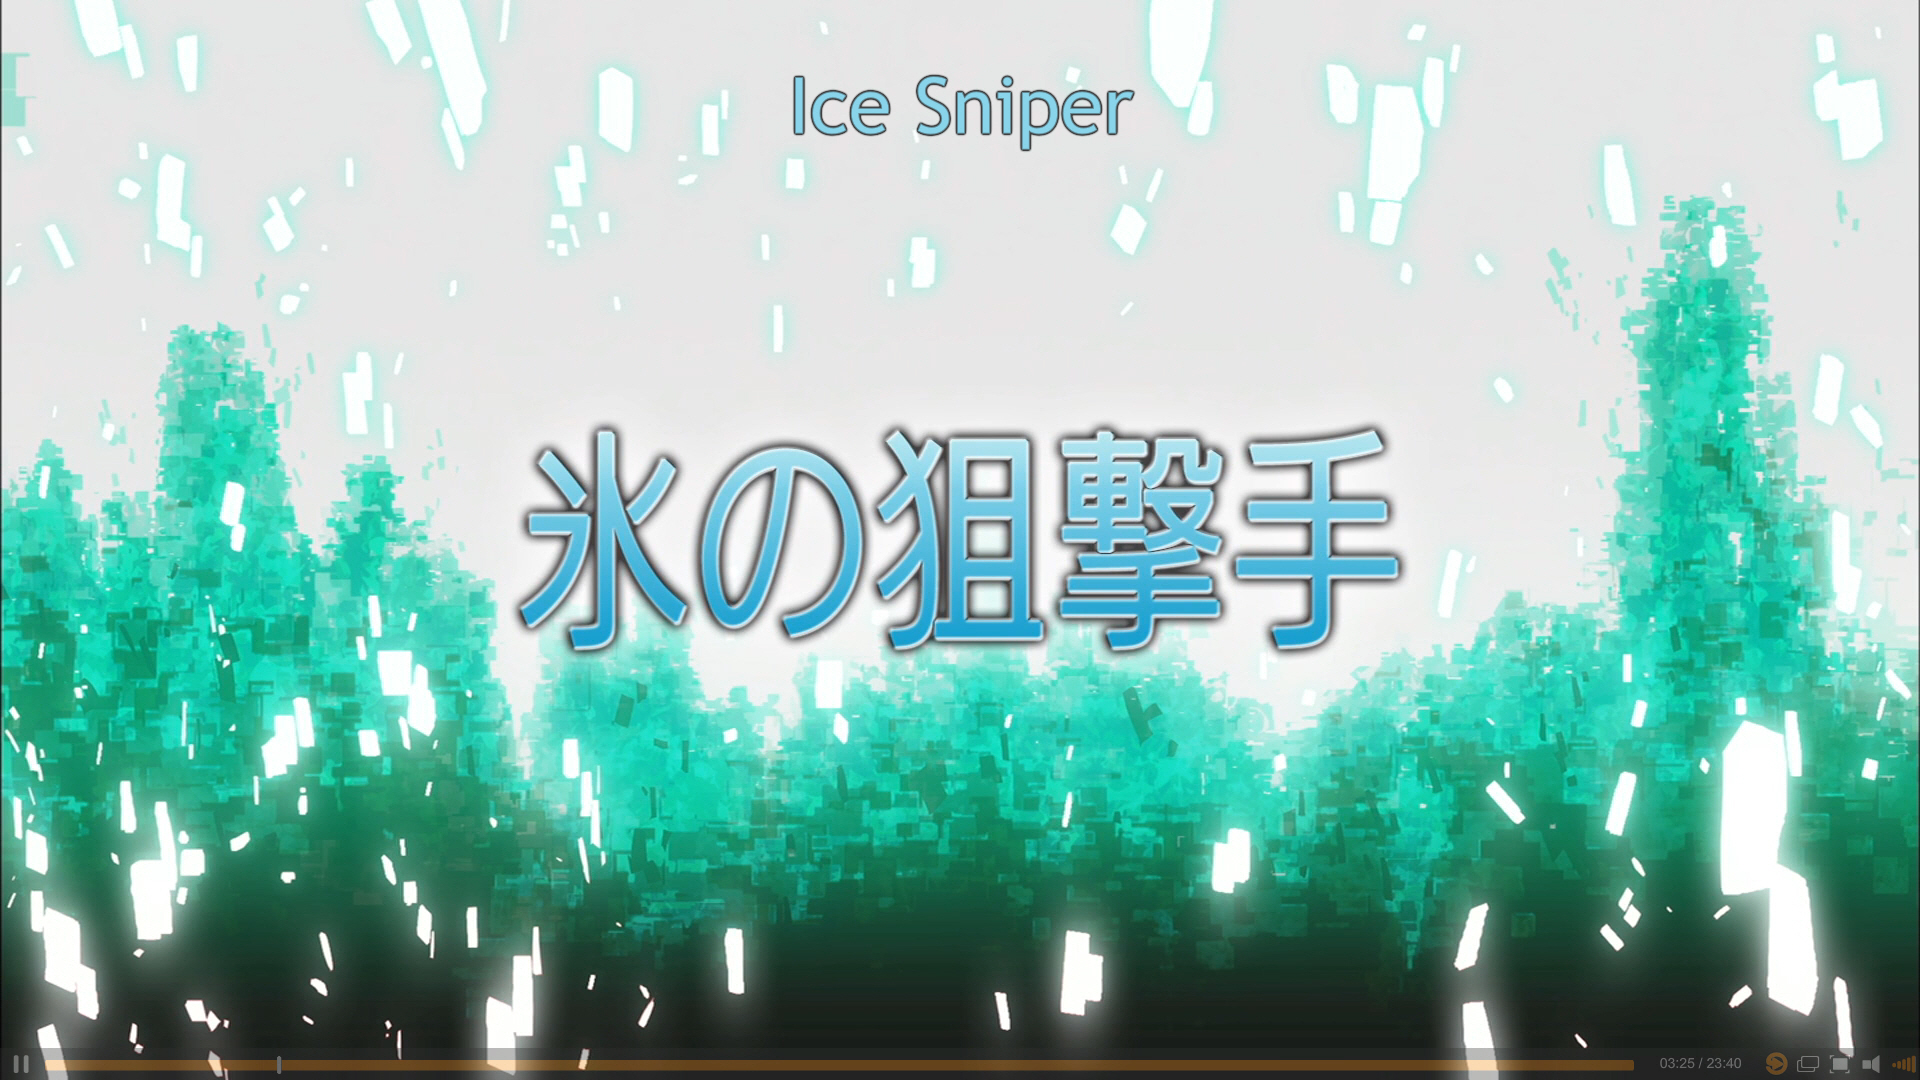 Sword Art Online 2 Episode 2  Ice Sniper 0007